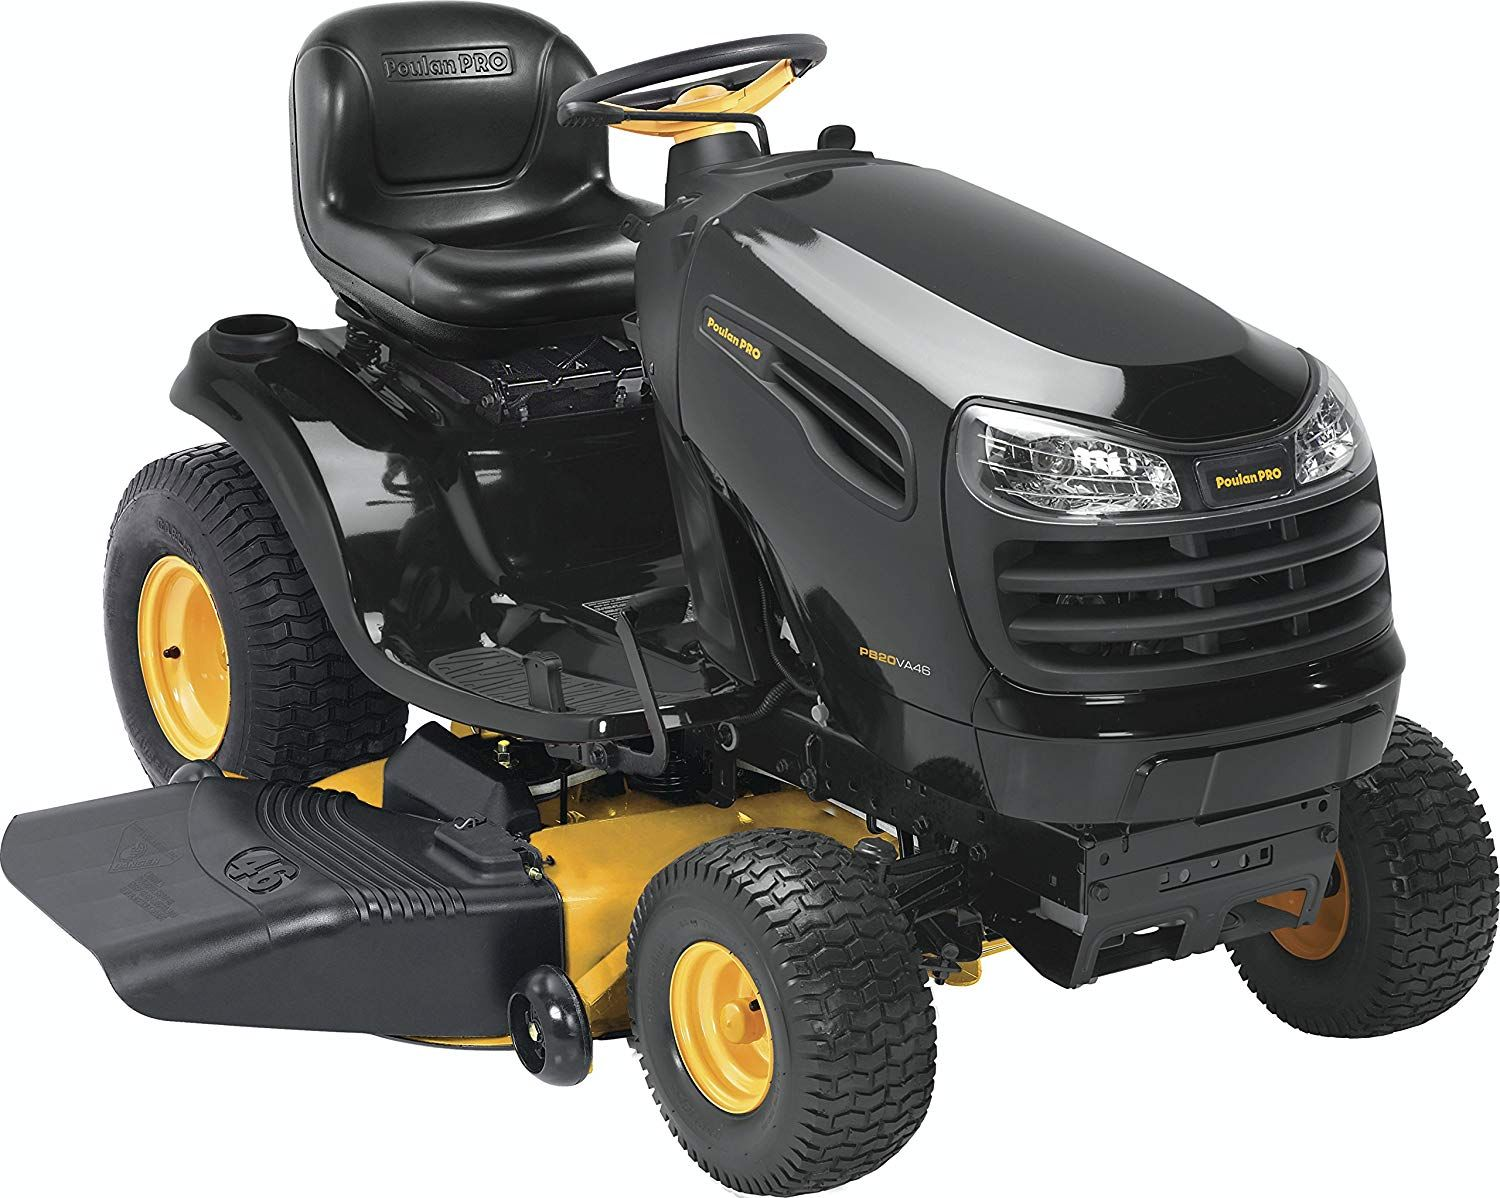 5 Of The Best Garden Tractor For Your Sizable Lawn & Heavy